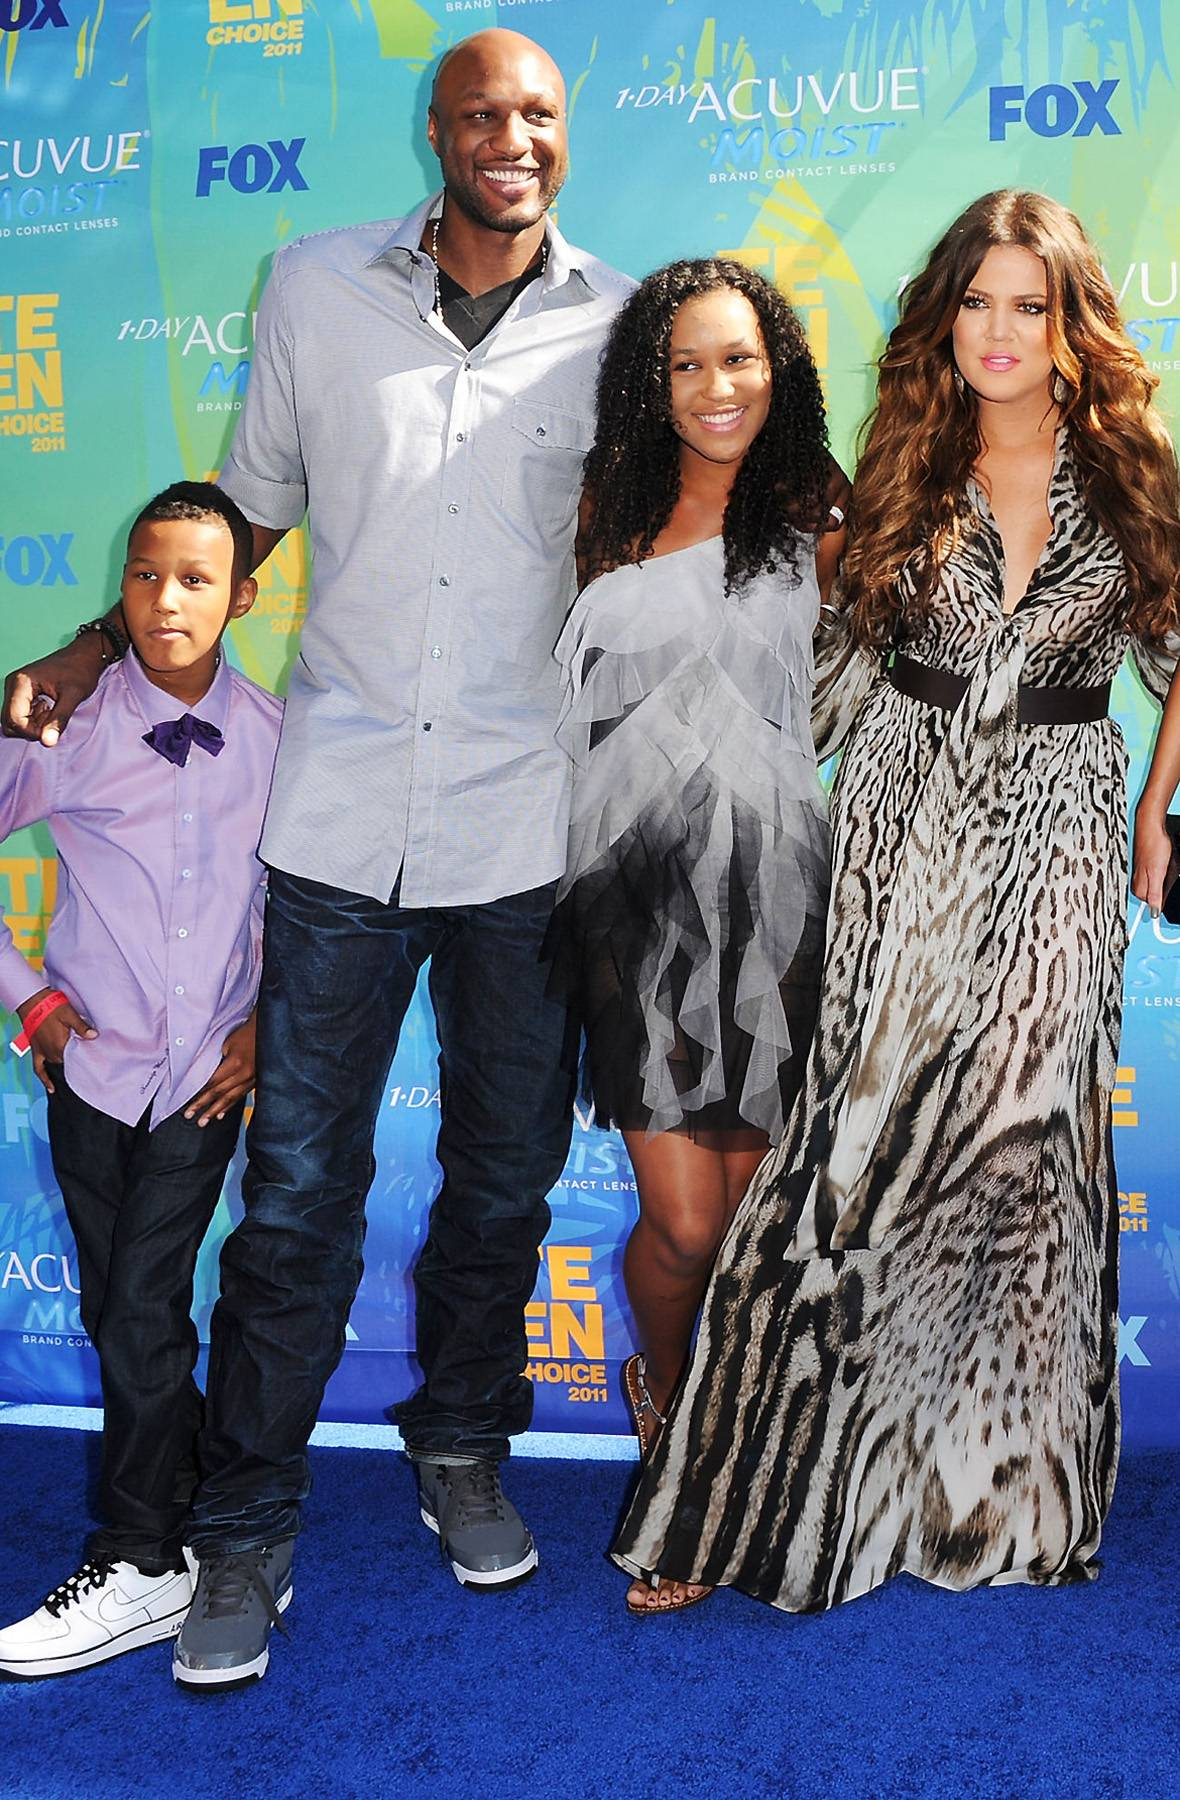 Baby Mama Drama - Moralesspoke out about her continuing shock that Odom committed to Kardashian and not her. Morales took Odom to child support court in 2013 over visitation, child support and their children?s appearance onThe Kardashians.(Photo: Jason Merritt/Getty Images)